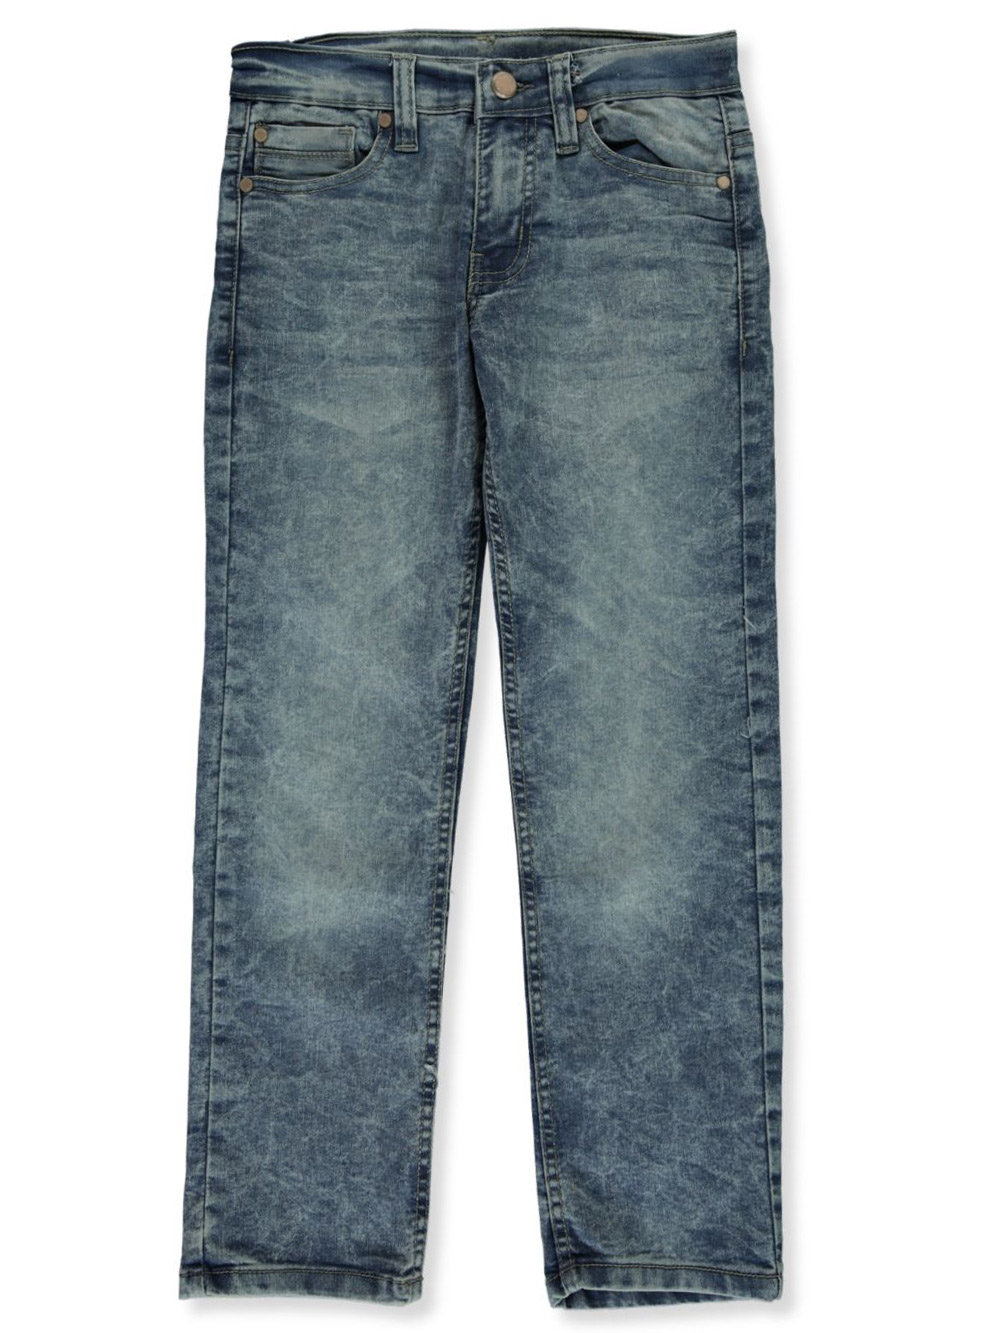 Size 10 Jeans for Boys